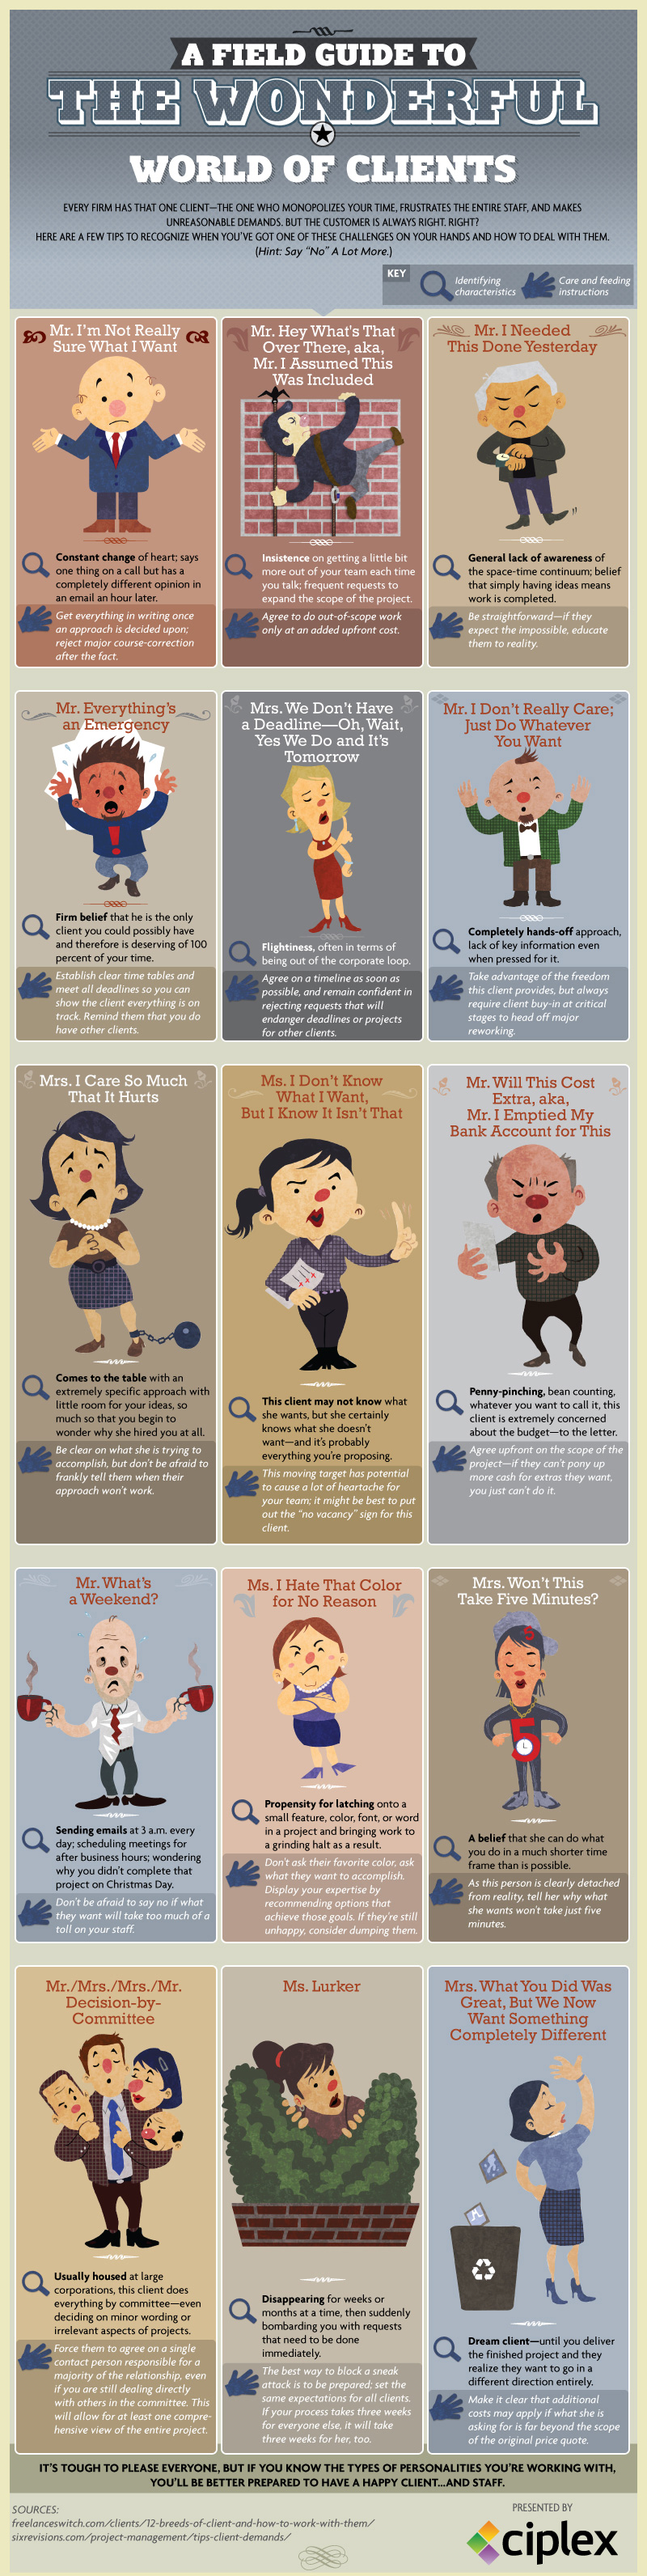 How To Identify and Deal With Different Types Of Clients - 15 Different Types of Clients